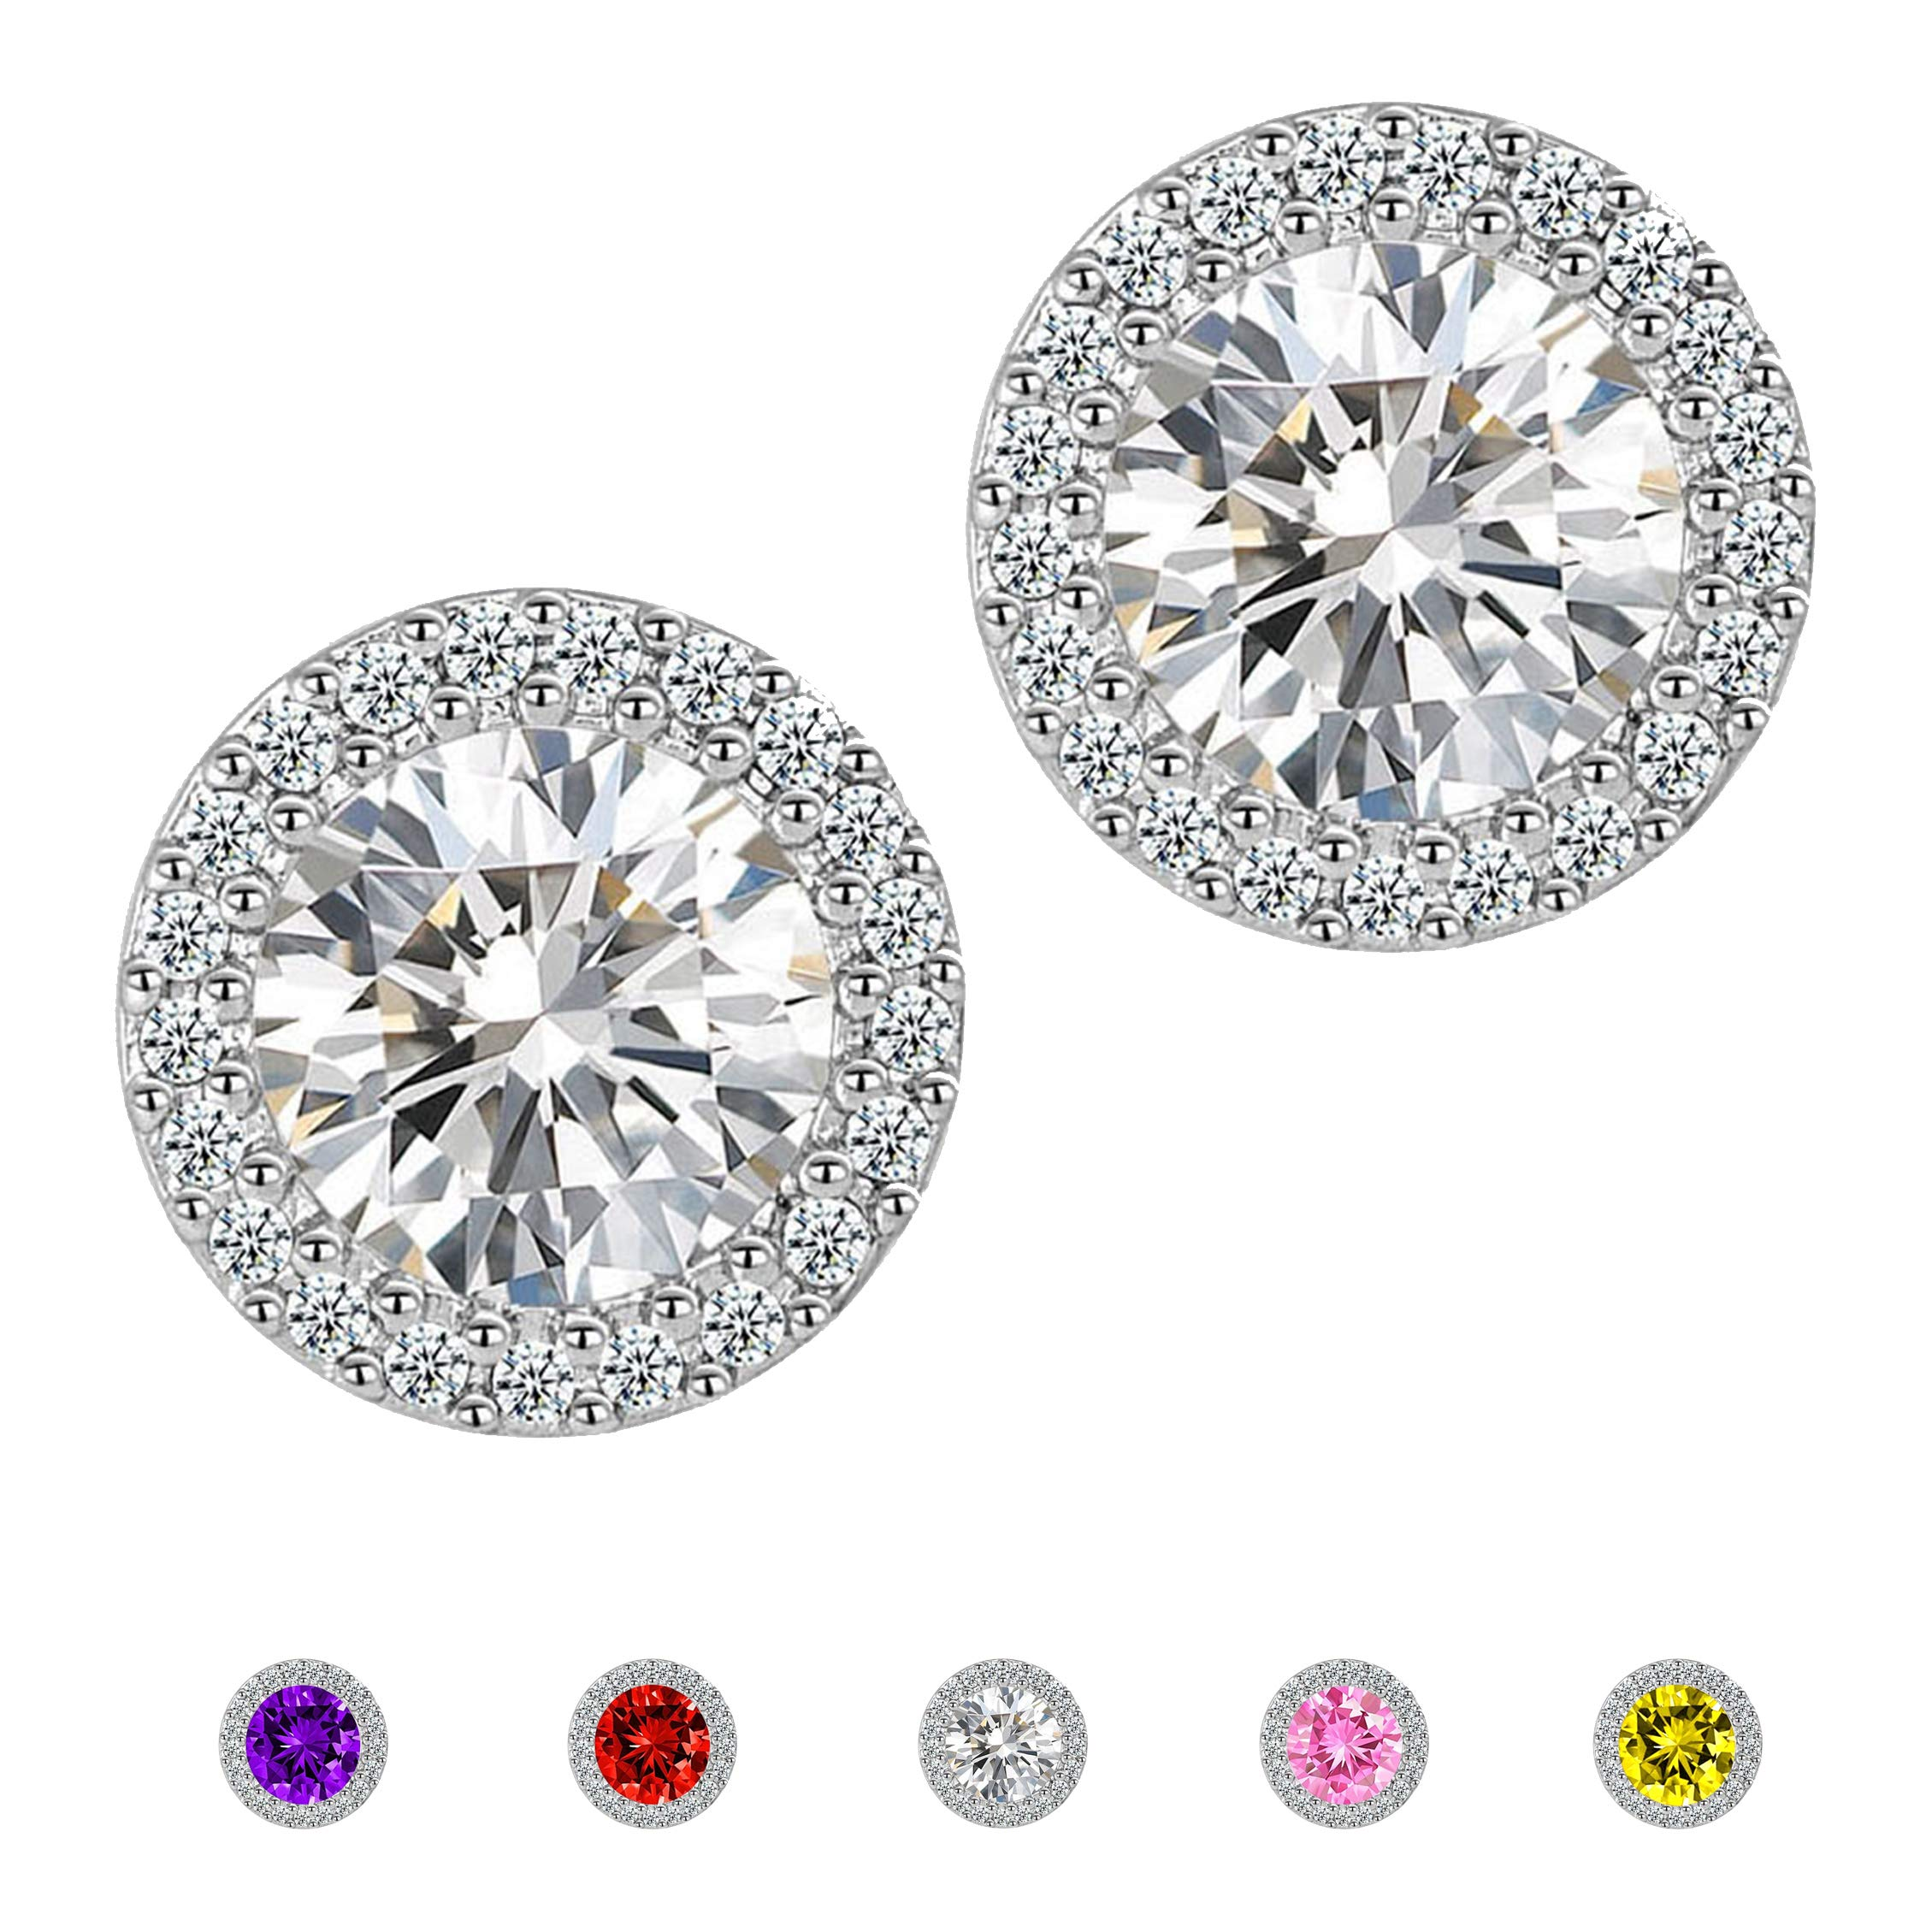 Stud Earrings,Fashion Jewelry Cubic Zirconia Halo Earrings for Women by anmao